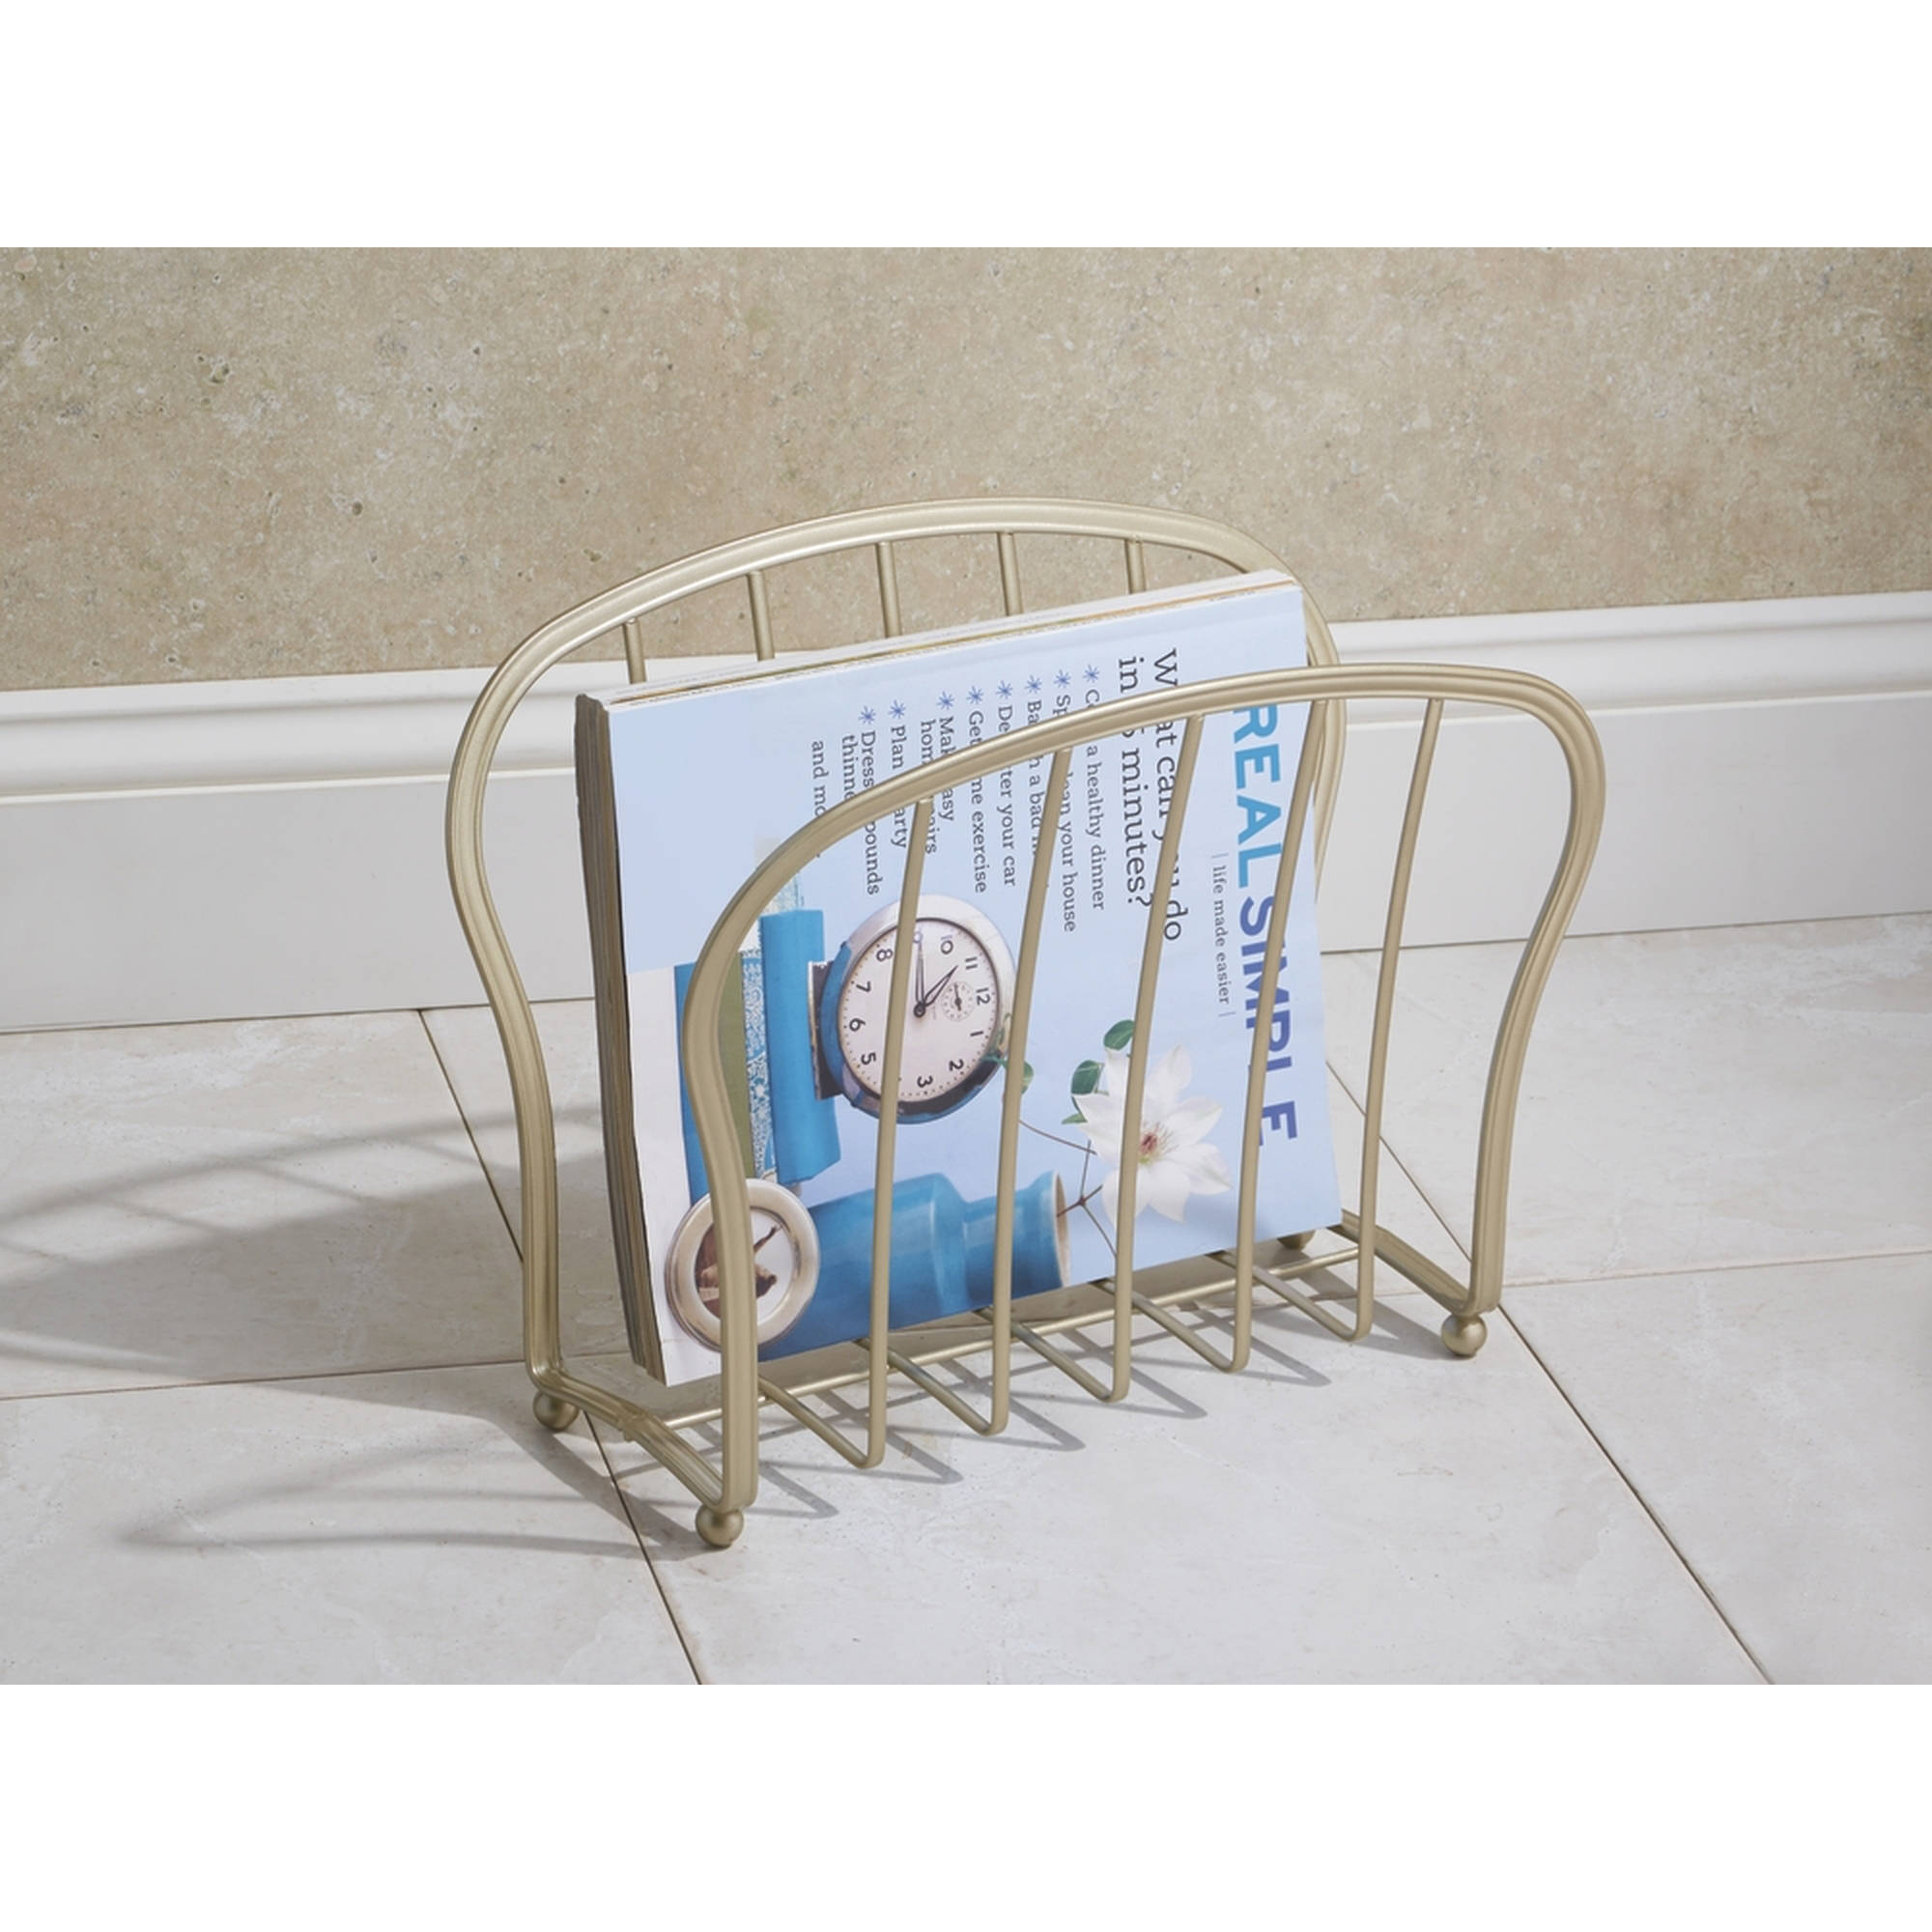 InterDesign York Lyra Newspaper And Magazine Rack For Bathroom, Office, Den